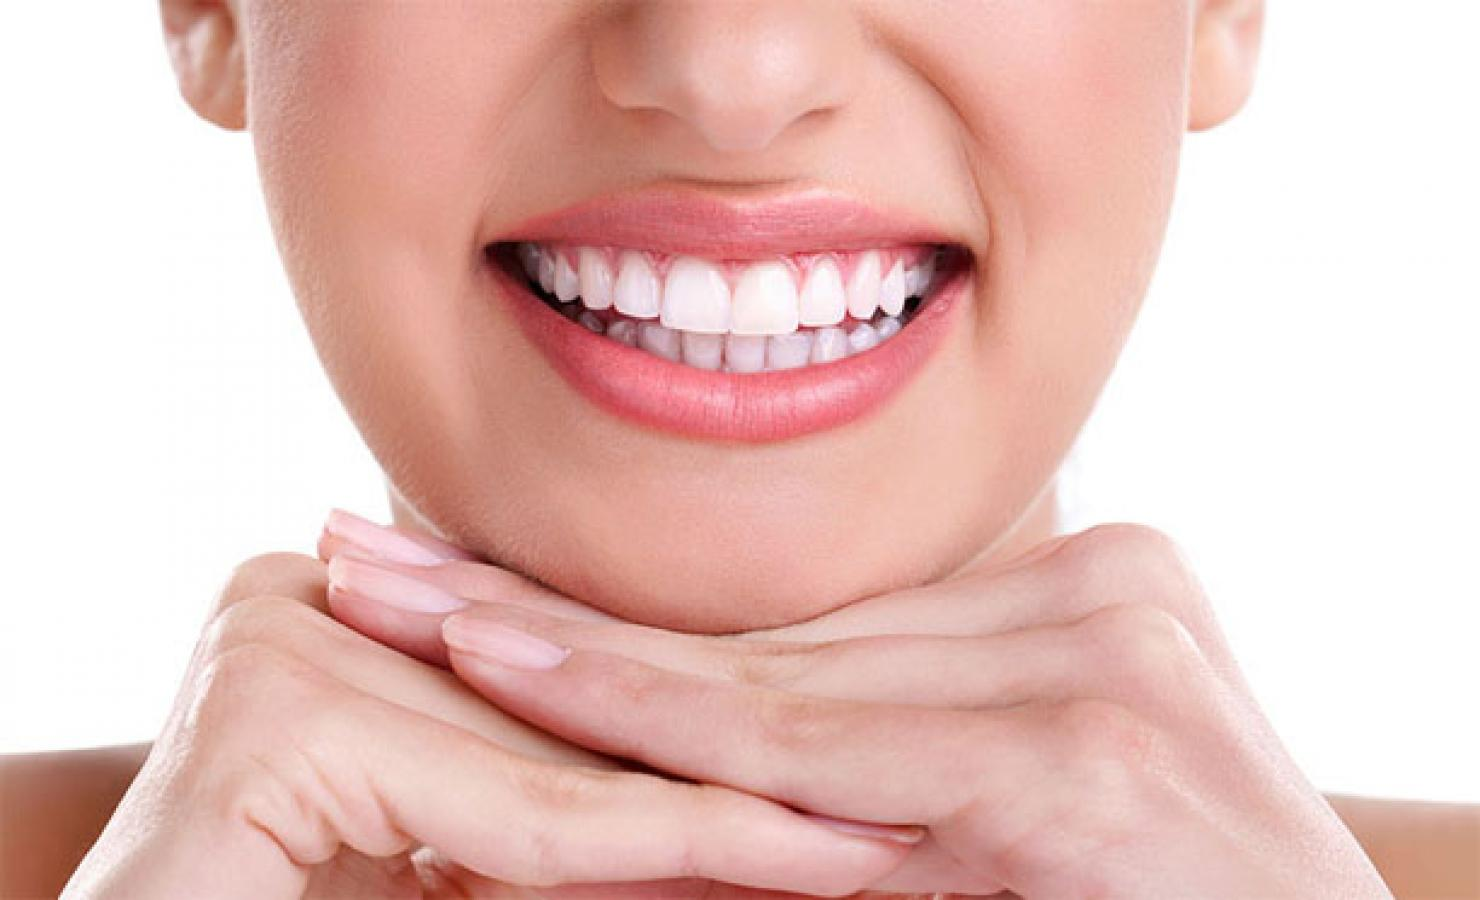 Noa Dental Clinic Turkey - Dentist in Antalya - High quality at affordable prices - Dental Fillings in Turkey